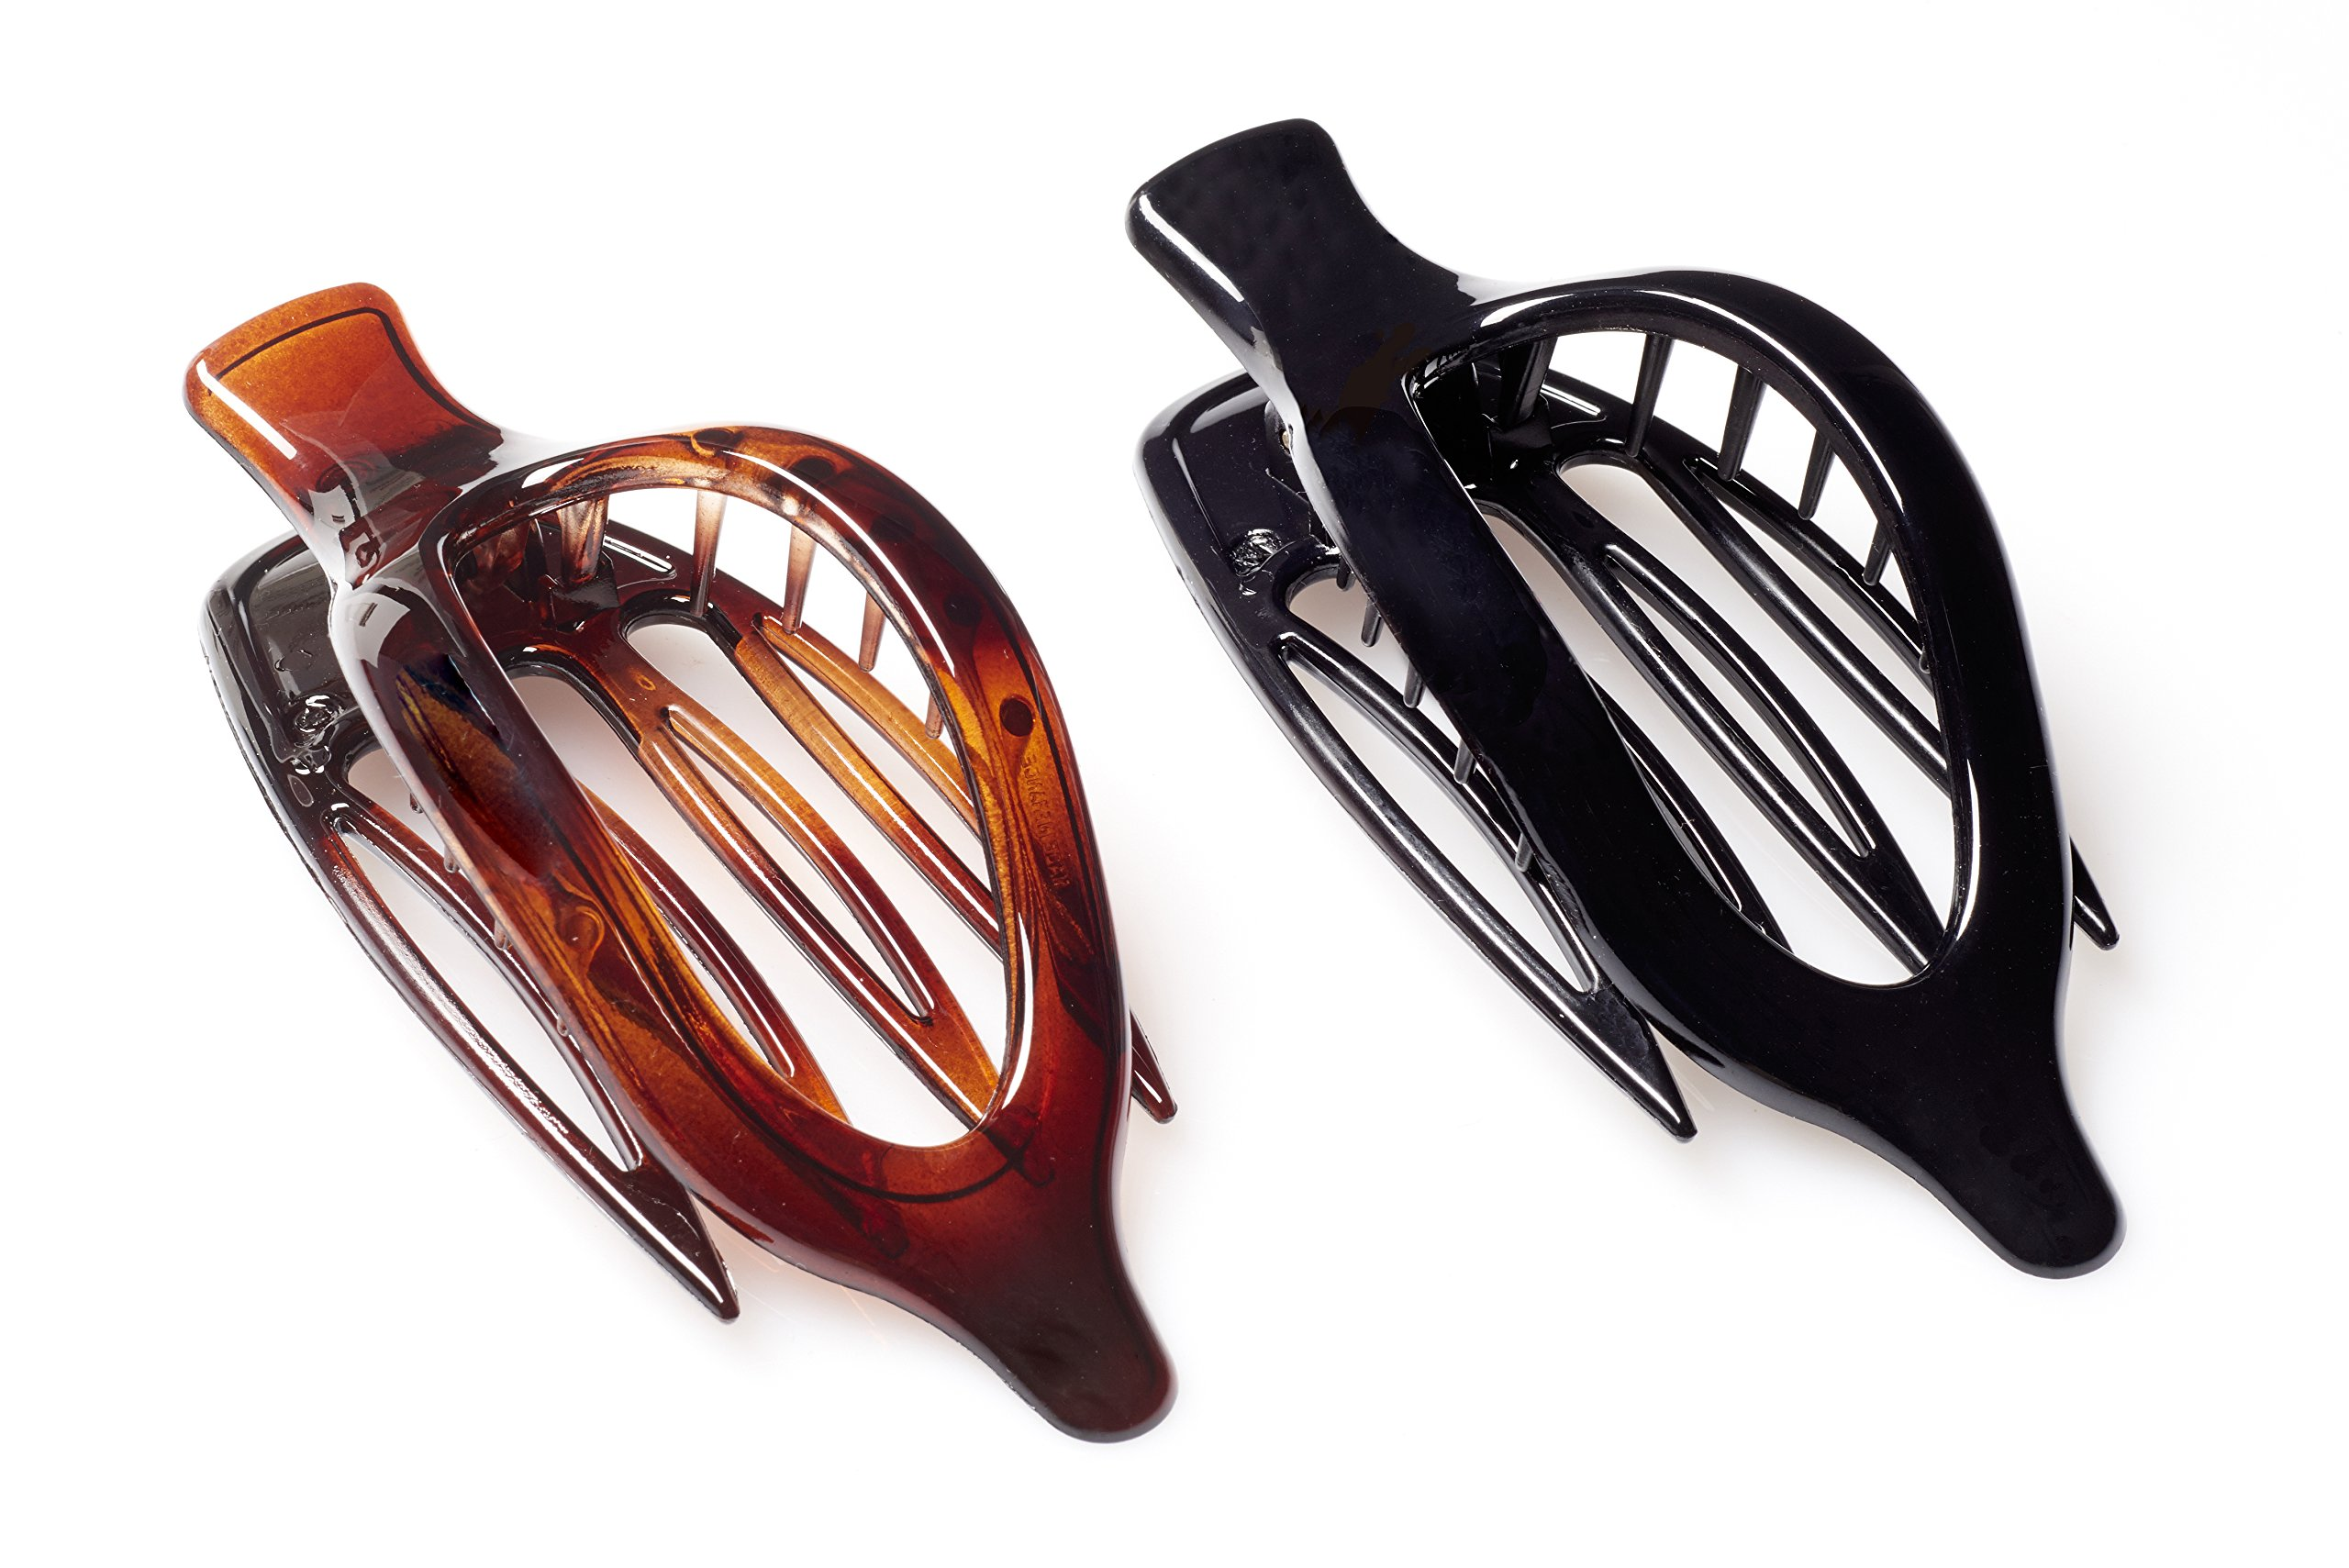 French Collection Set of 2 Side-Slide 'Infinity' Hair Claw Clips in Black & Tortoise Shell